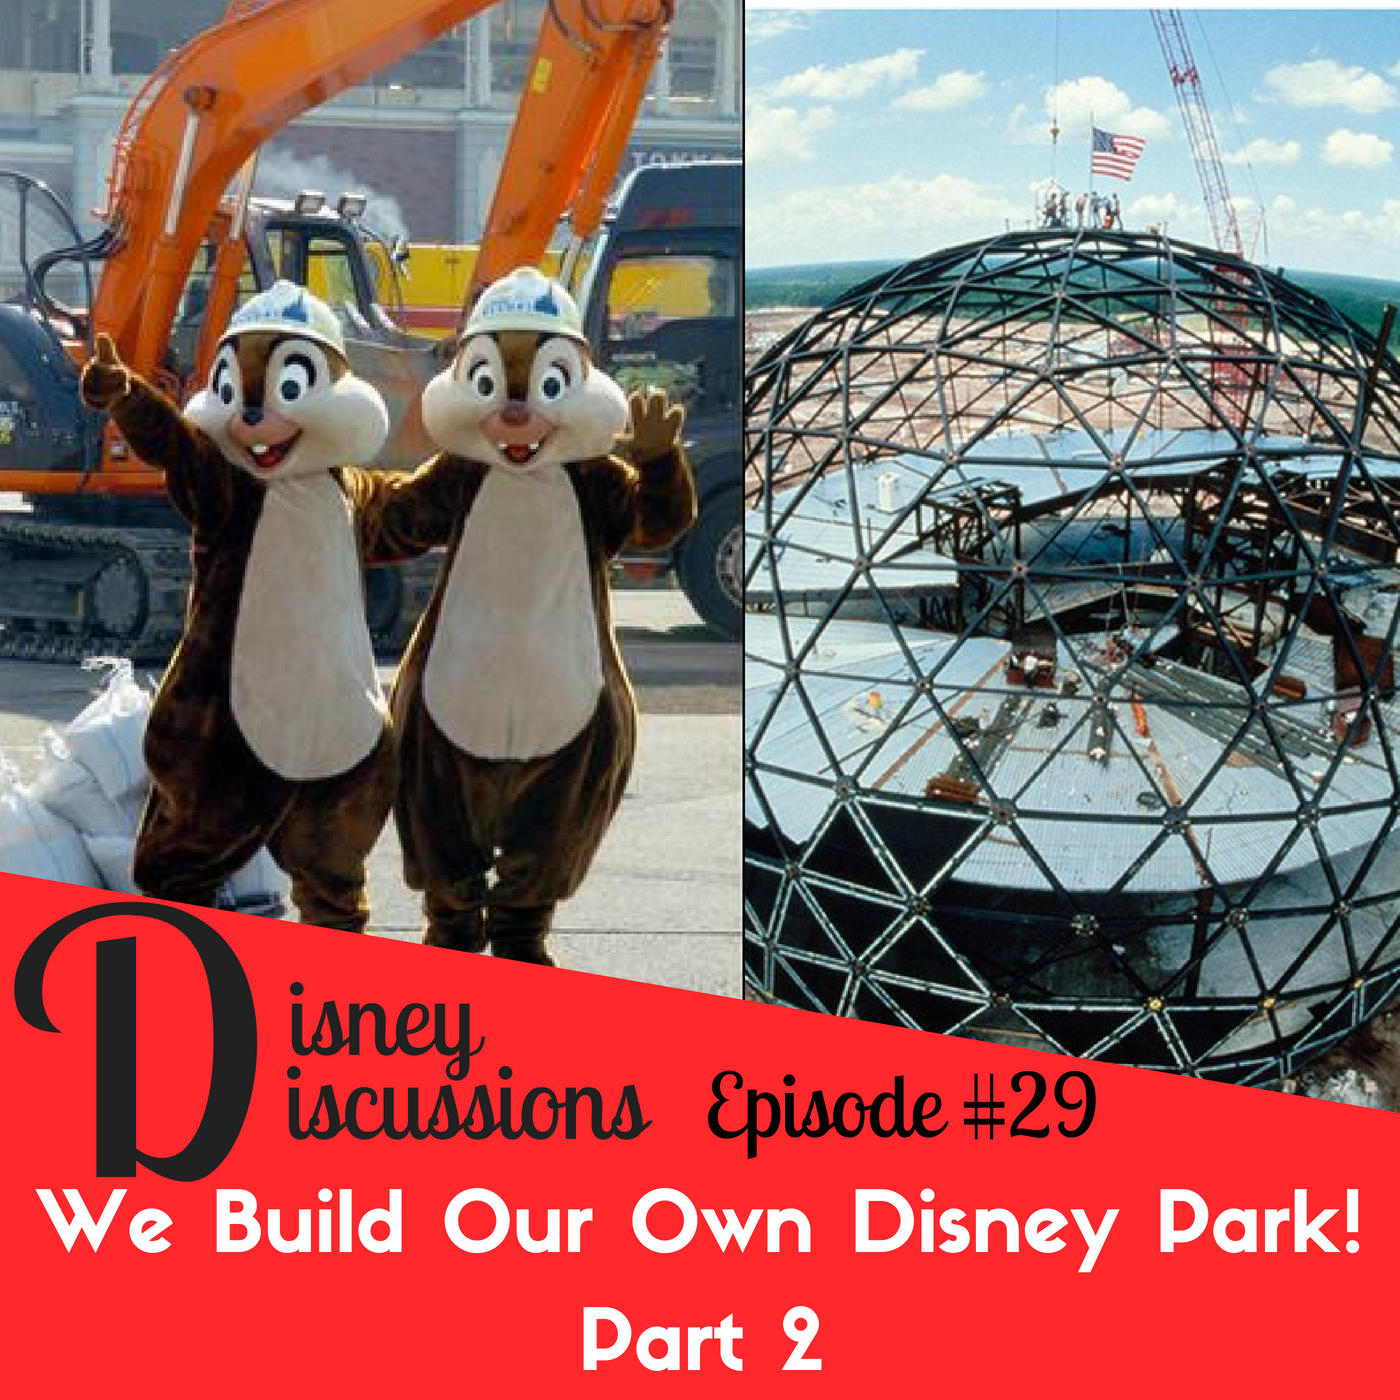 Build Our Own Disney Park Part 2, Our thoughts on Solo, Lots of Star Wars Galaxy's Edge News, and more! - Disney Discussions